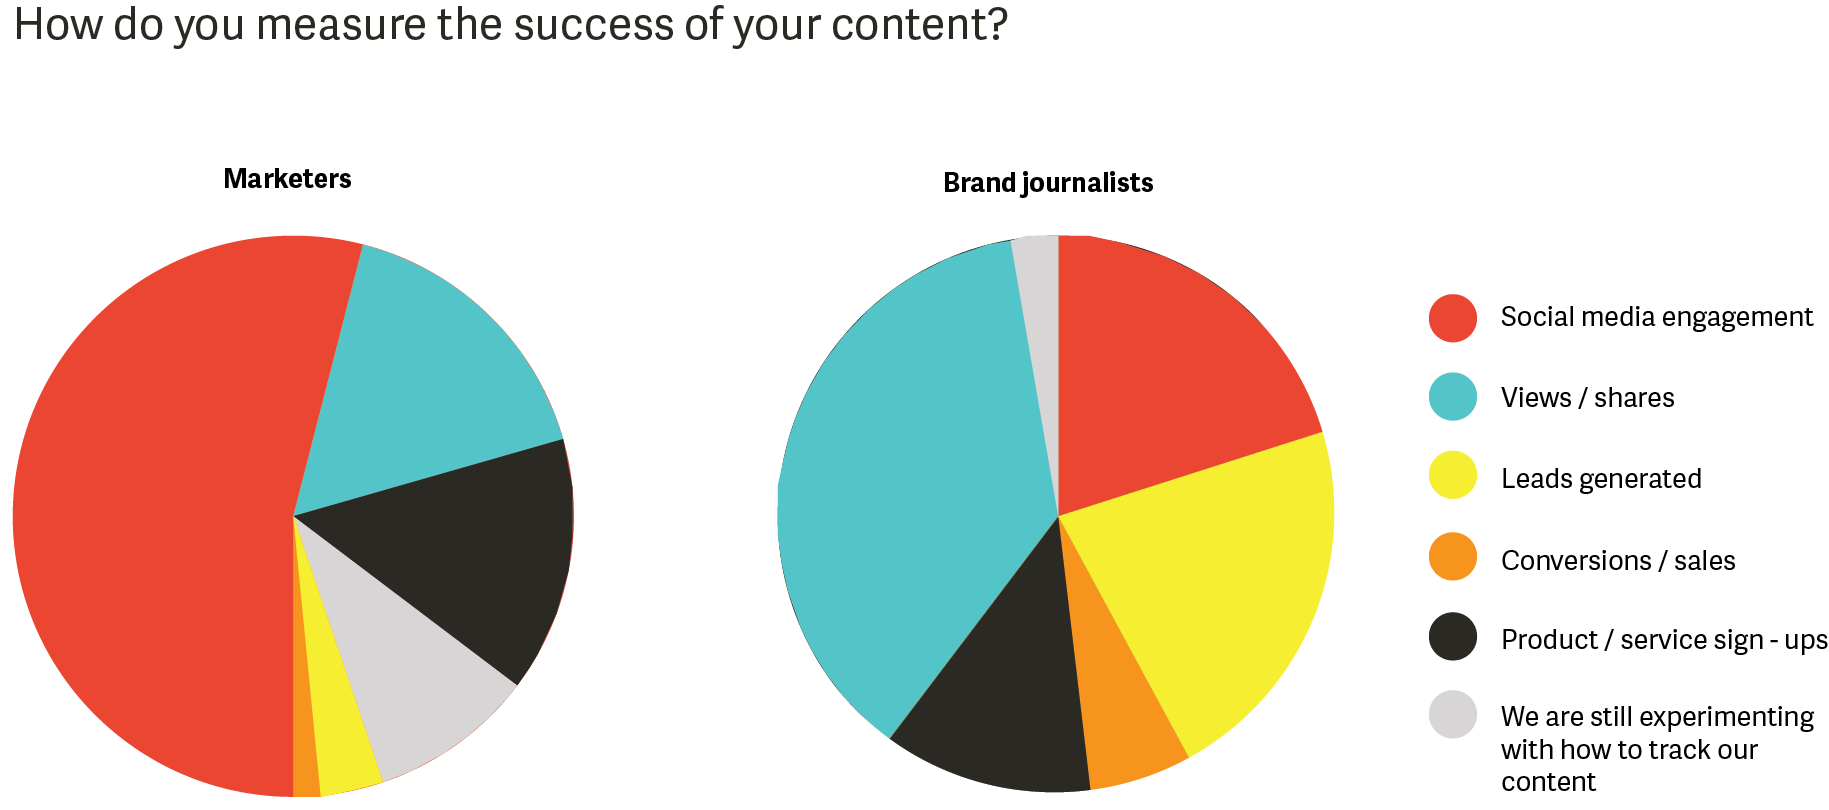 How do you measure the success of your content